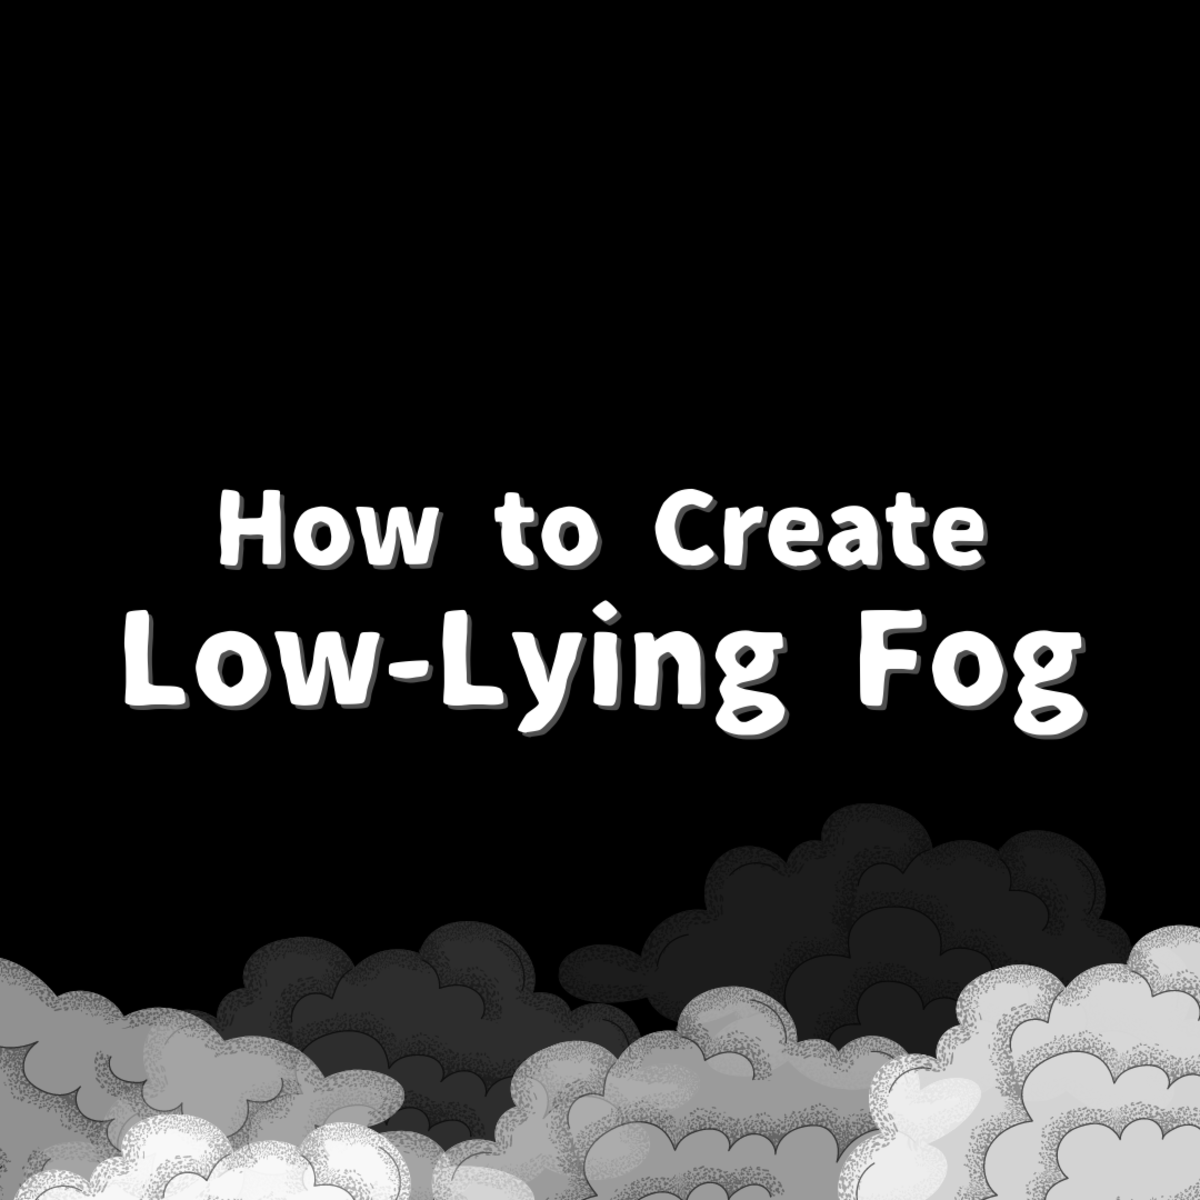 Creating ground fog with a fog machine is tricky, but there are some strategies you can use to ensure a good effect.